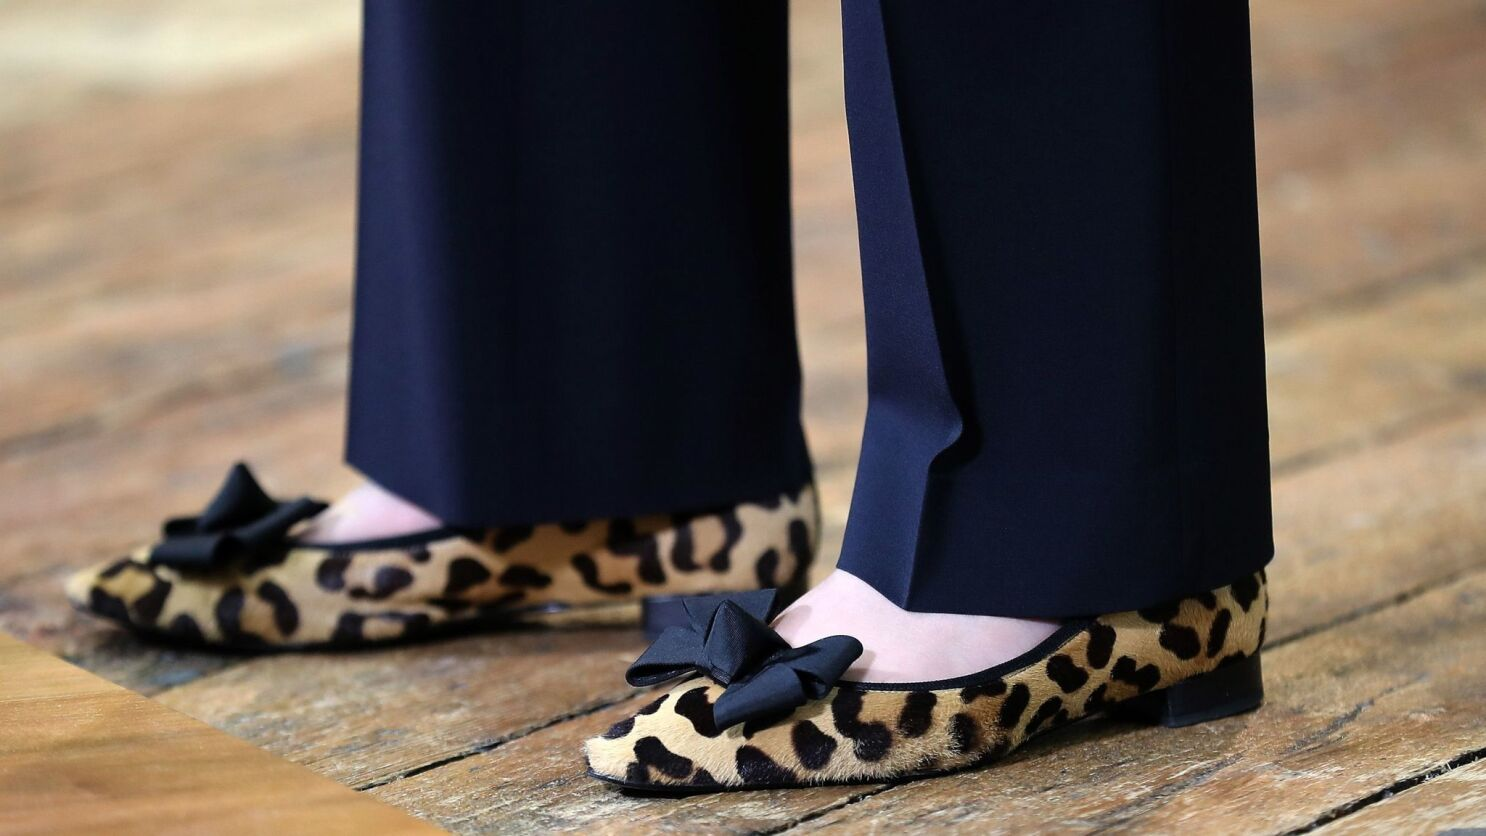 9b68fa2daa8 High heels are the worst, and women are ditching them - Los Angeles ...